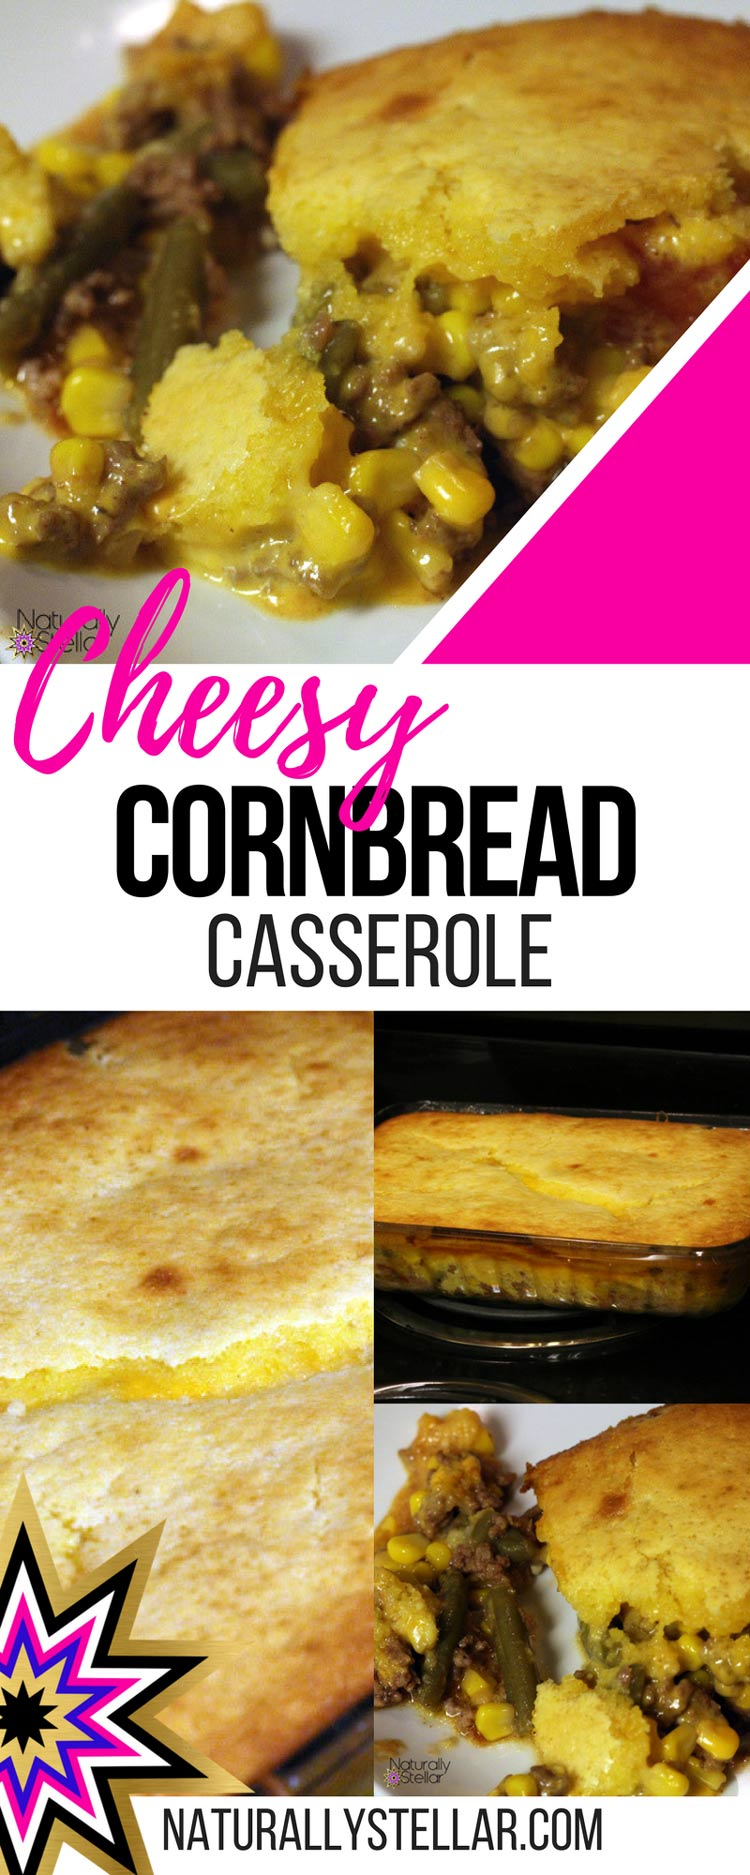 Cheesy Cornbread Casserole Recipe | Naturally Stellar